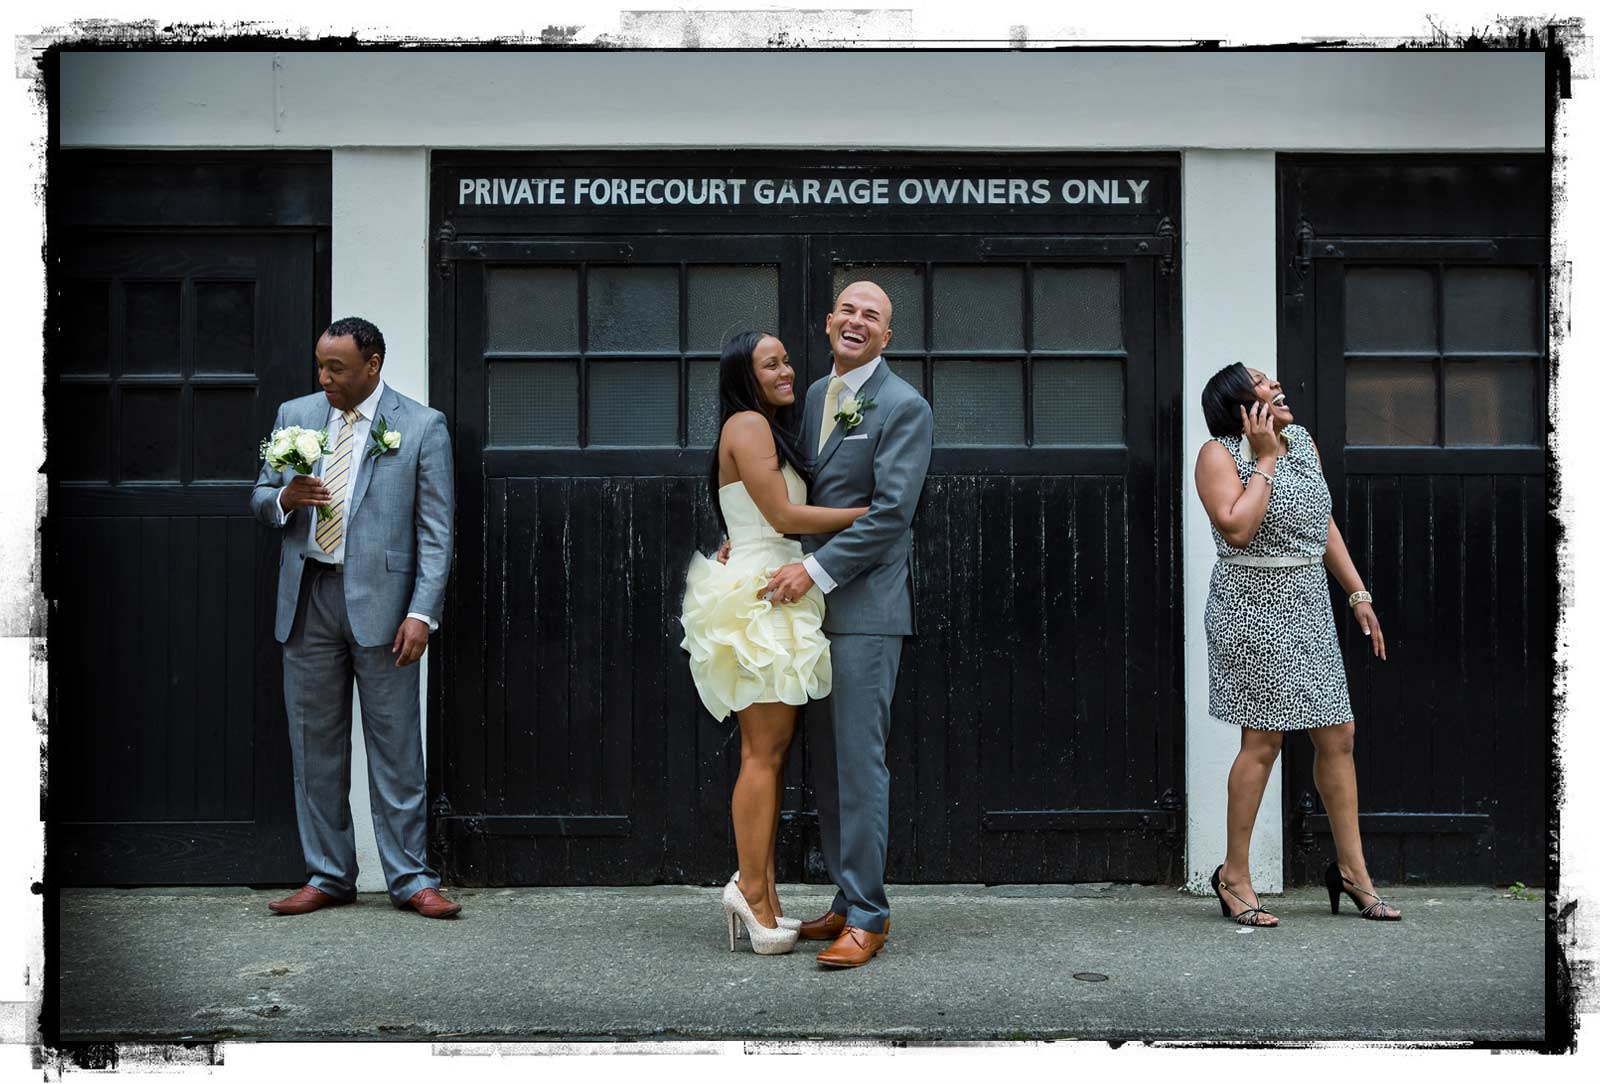 London_street_scene_contact_page_wedding_image